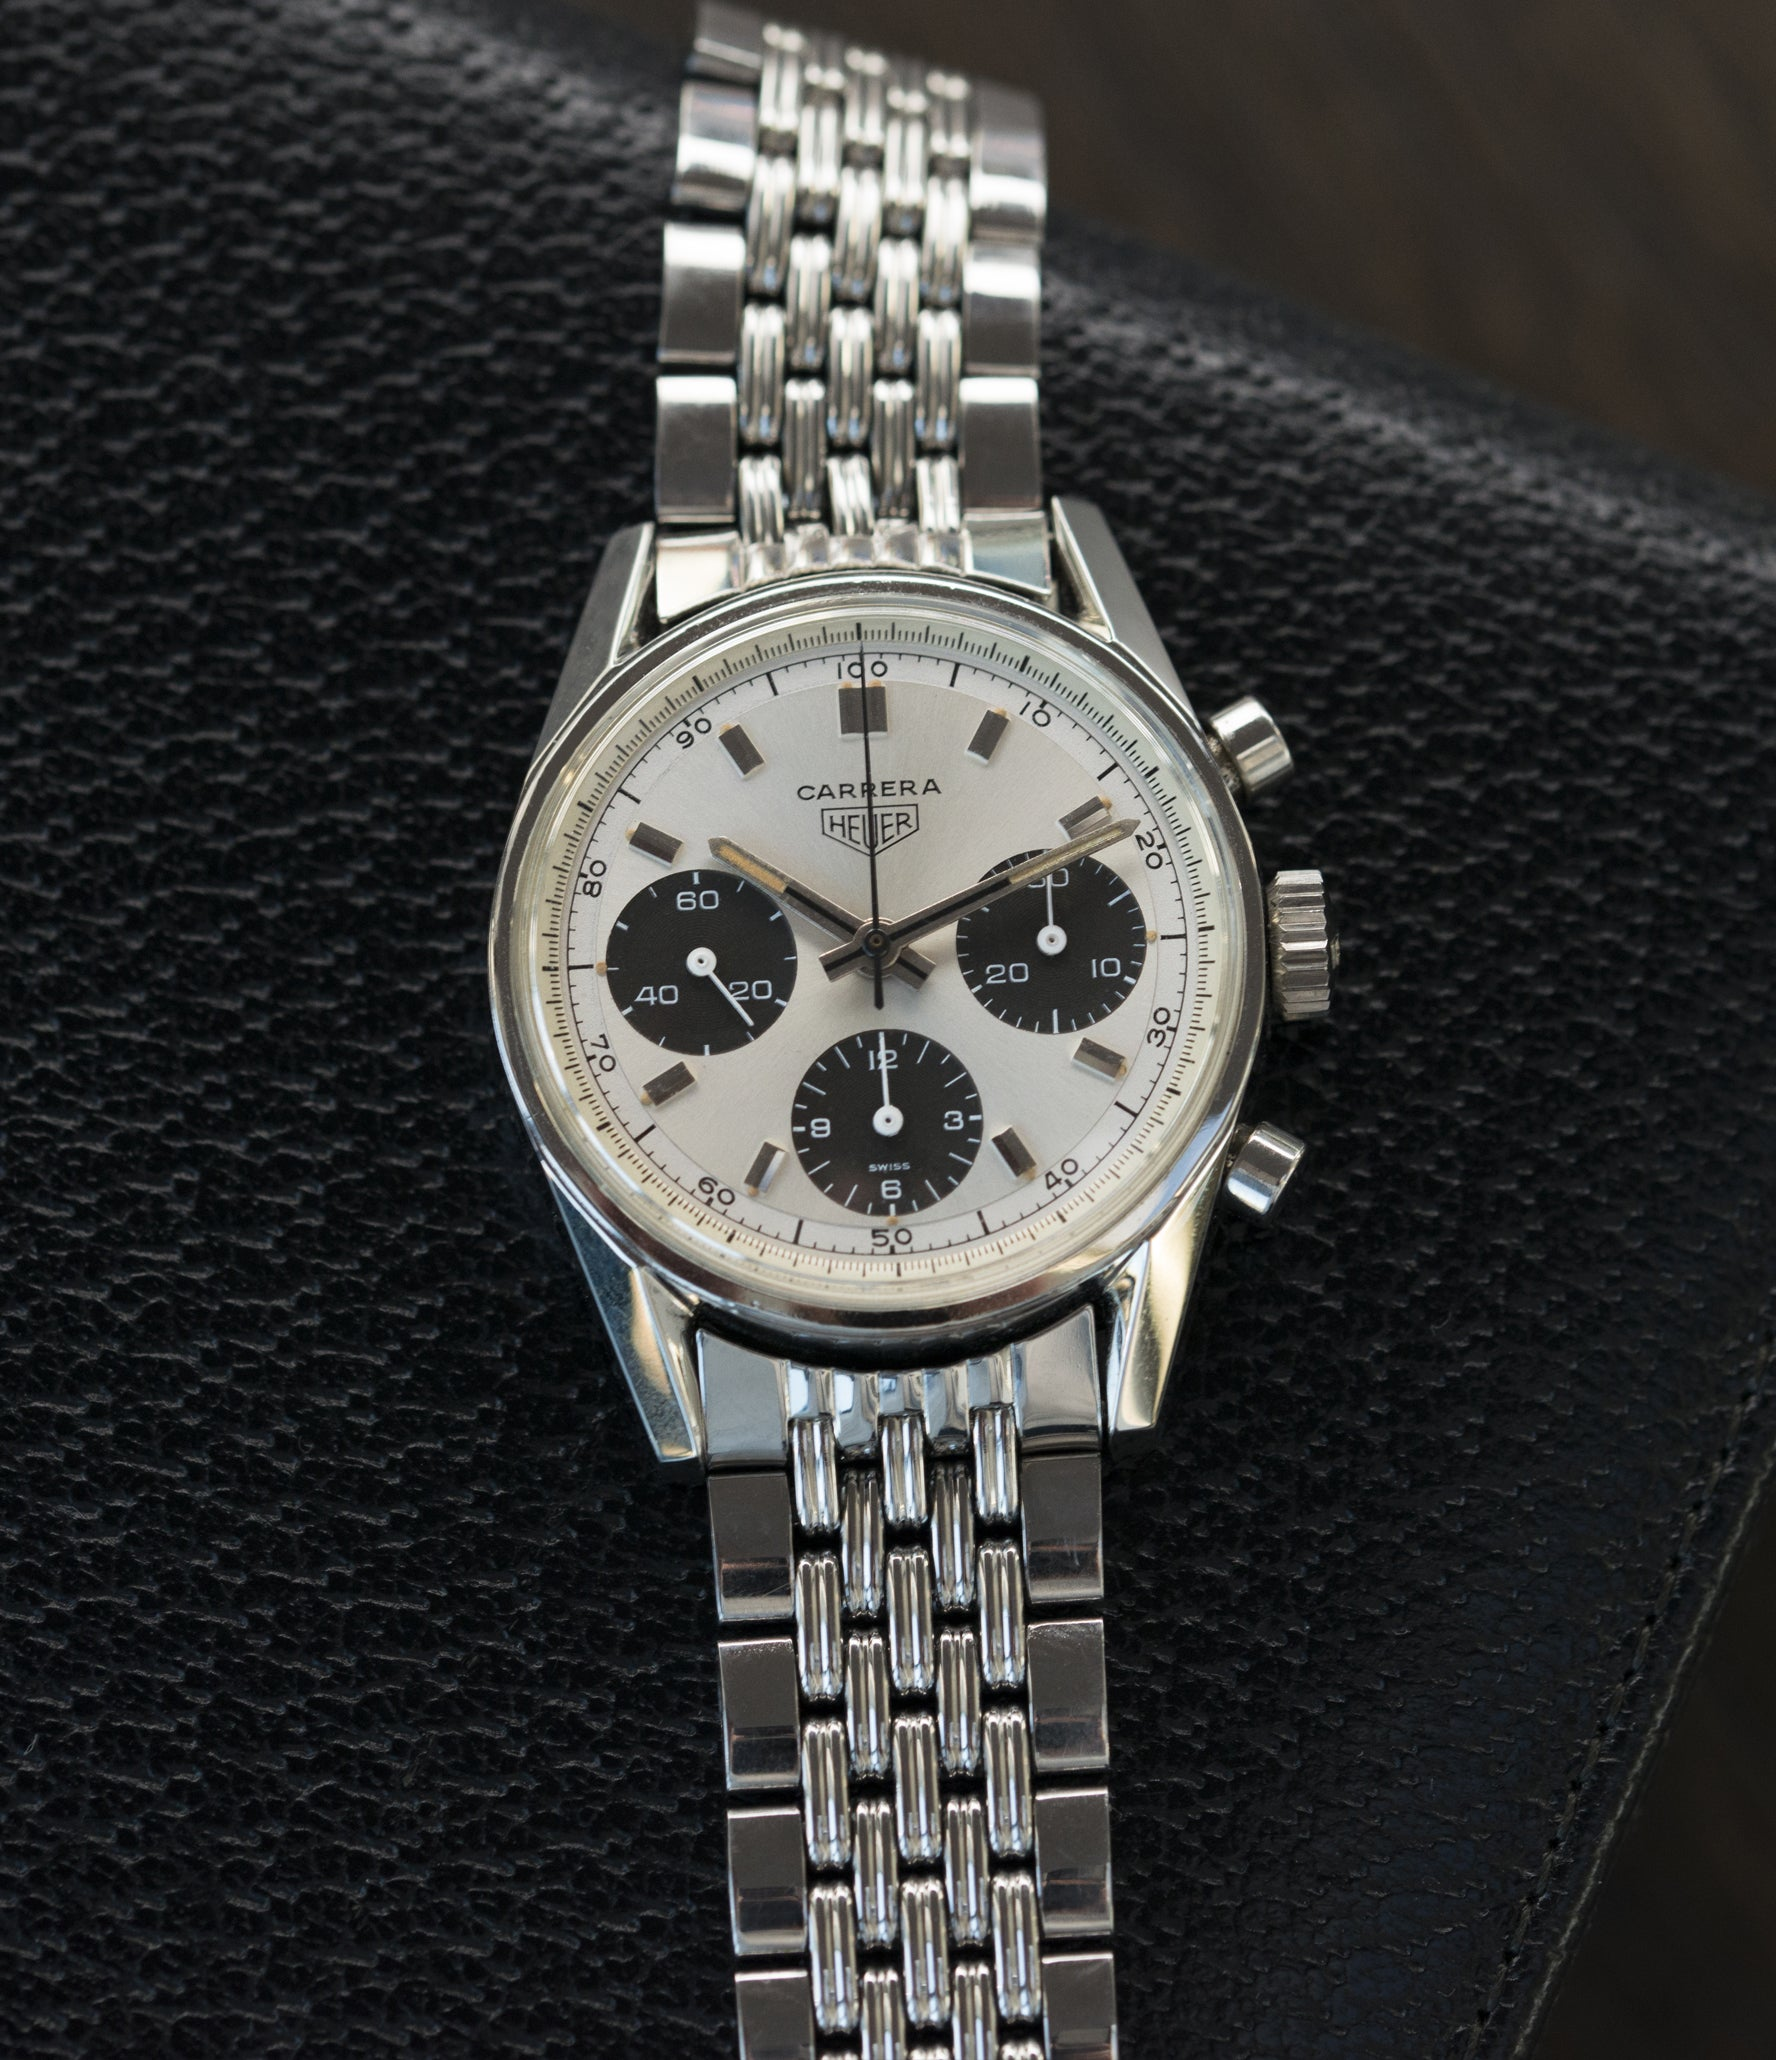 sell vintage Heuer Carrera 2447SND panda dial steel sport watch online at A Collected Man London UK specialist of rare vintage watches